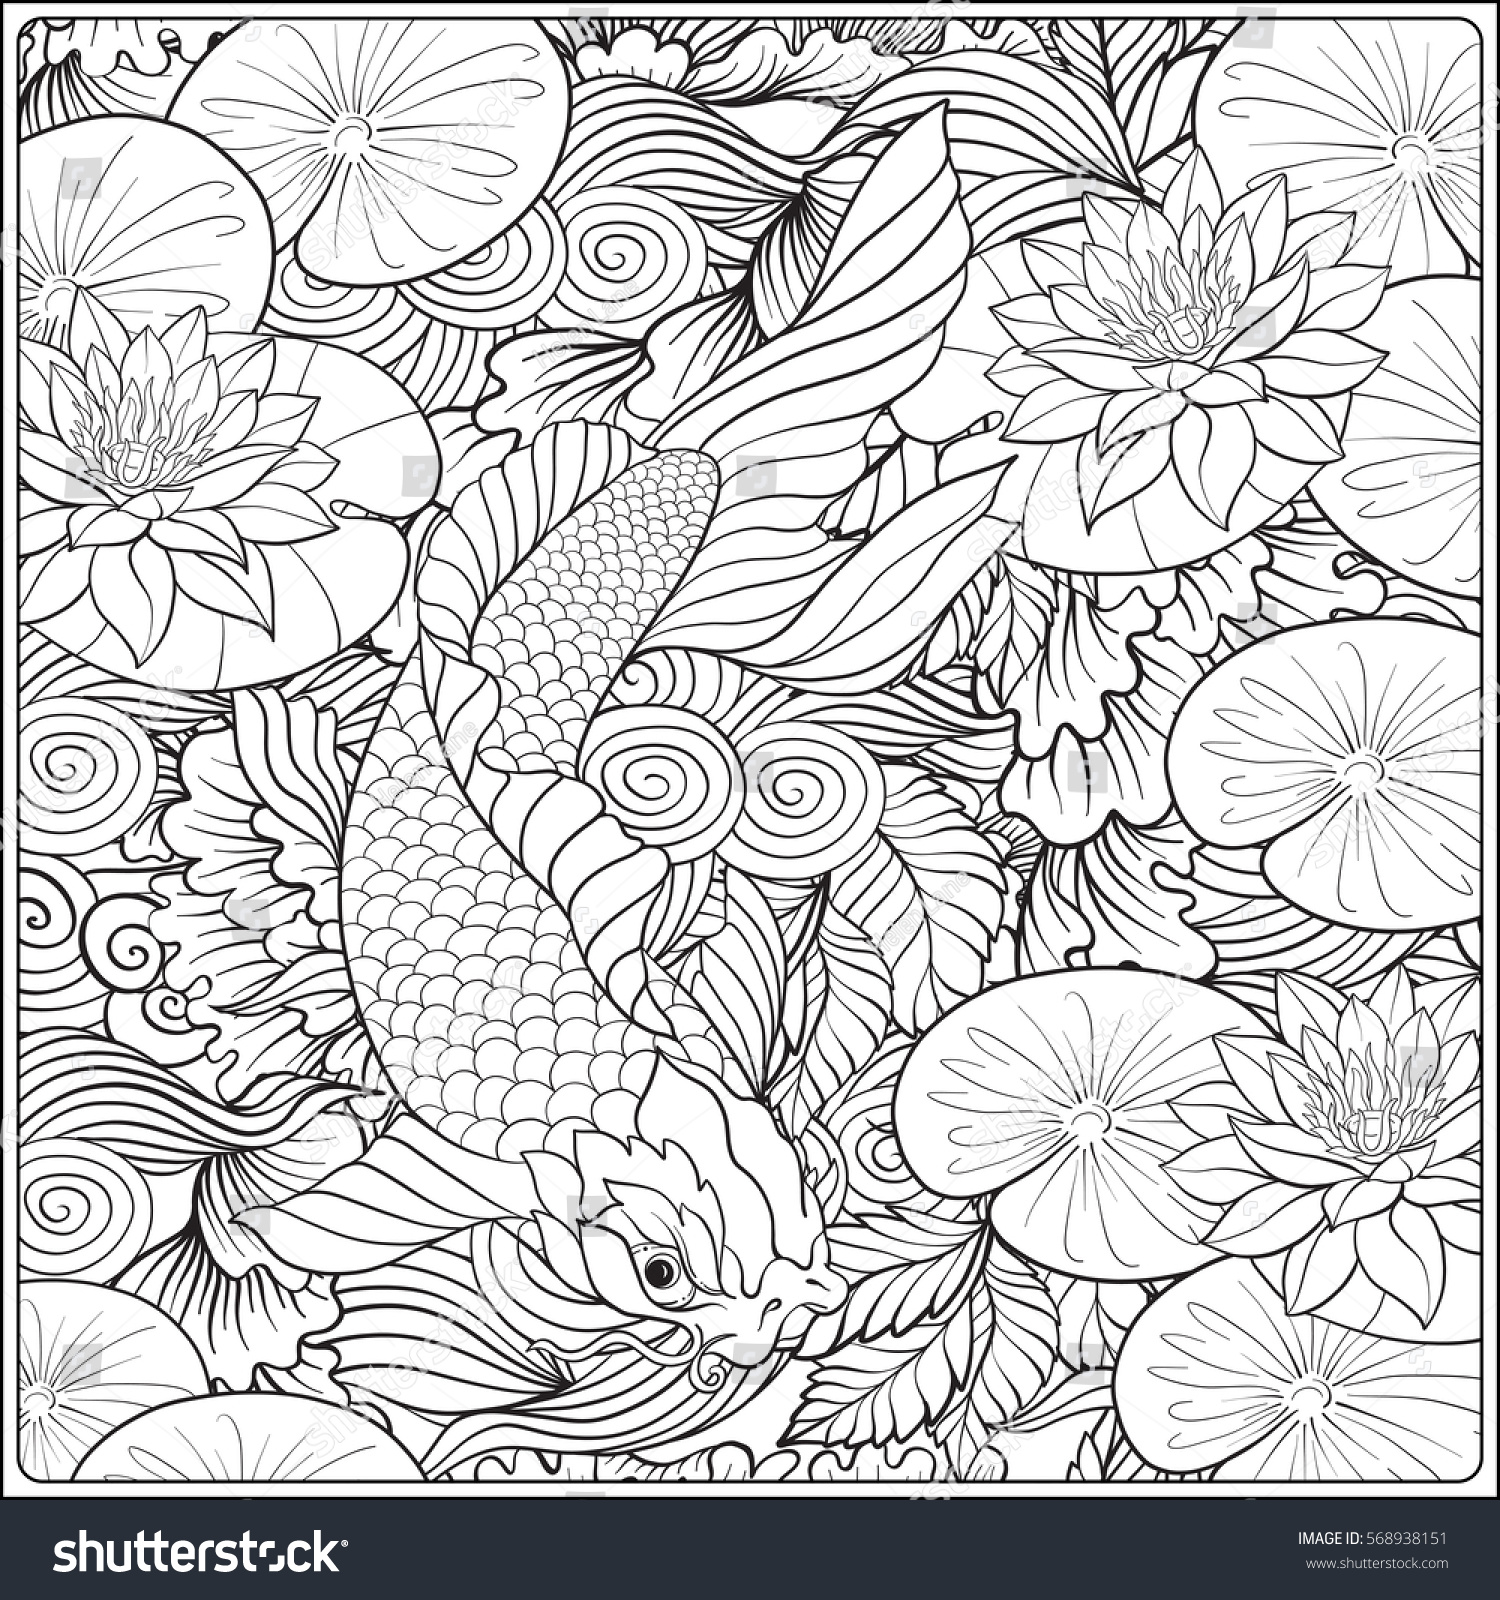 Lotus designs coloring book - Japanese Landscape With Lotus And Fish Outline Drawing Coloring Page Coloring Book For Adult